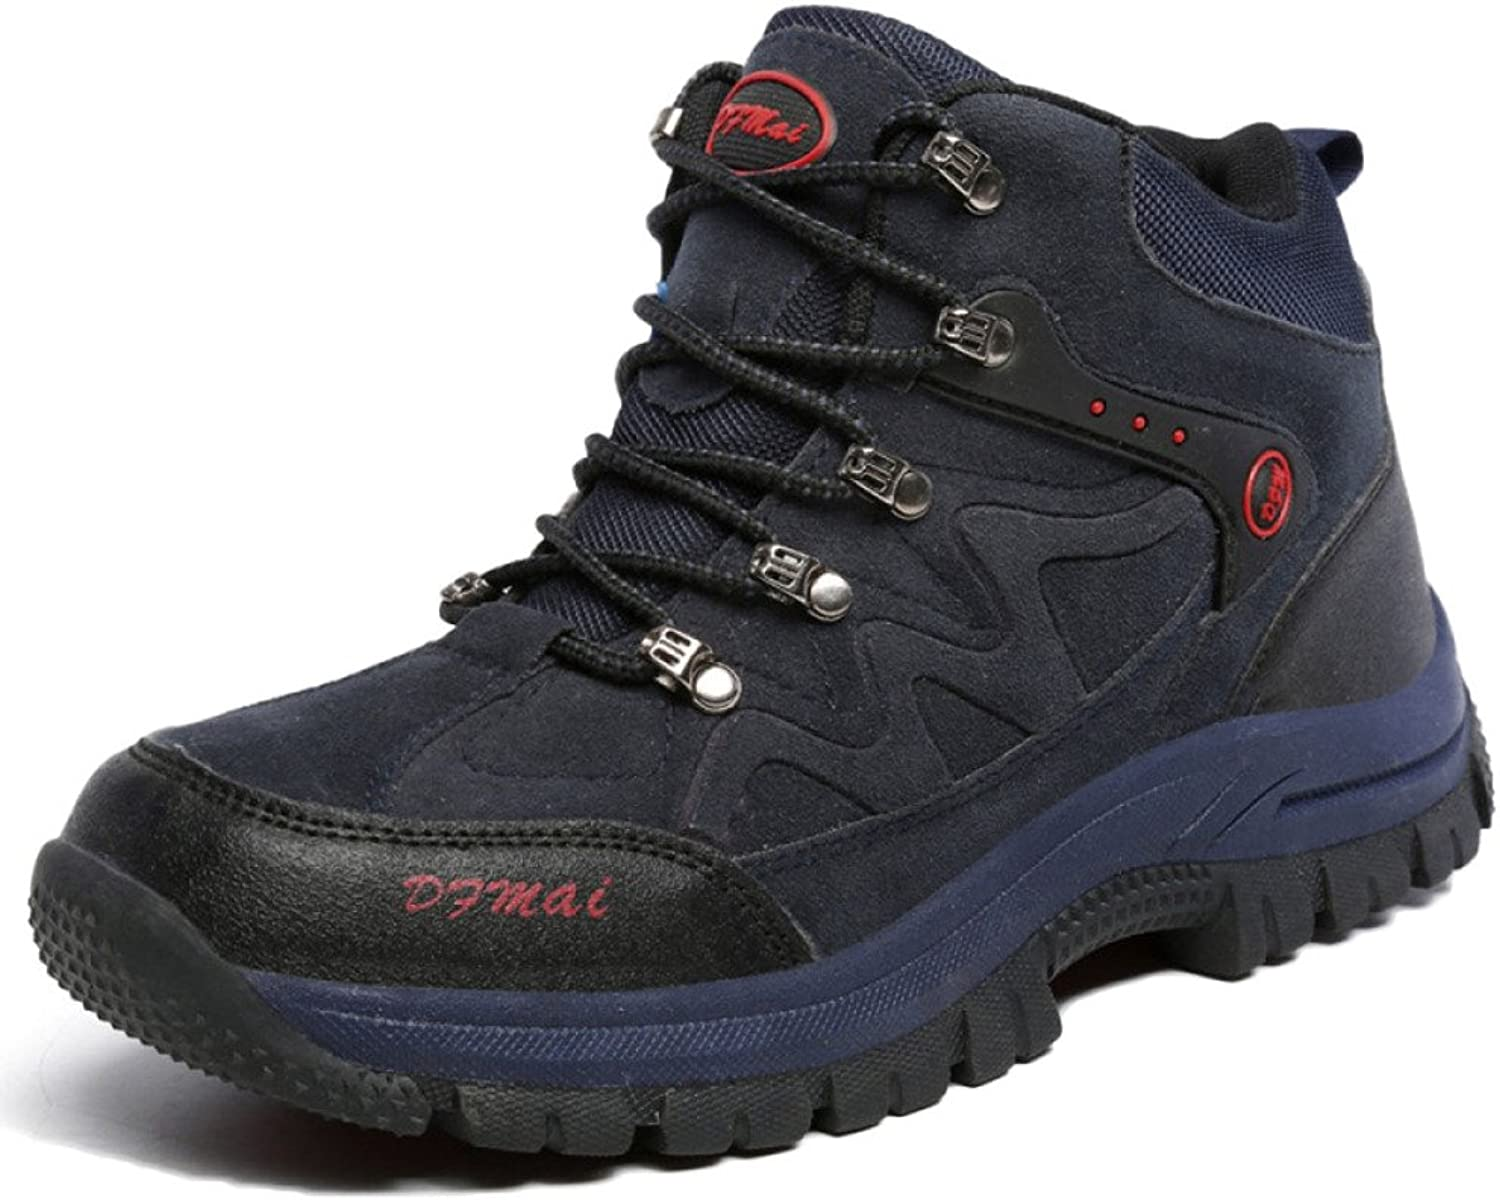 Hiking shoes for Men Waterproof Lightweight High-top Lightweight Shockproof Autumn and Winter Outdoor Size